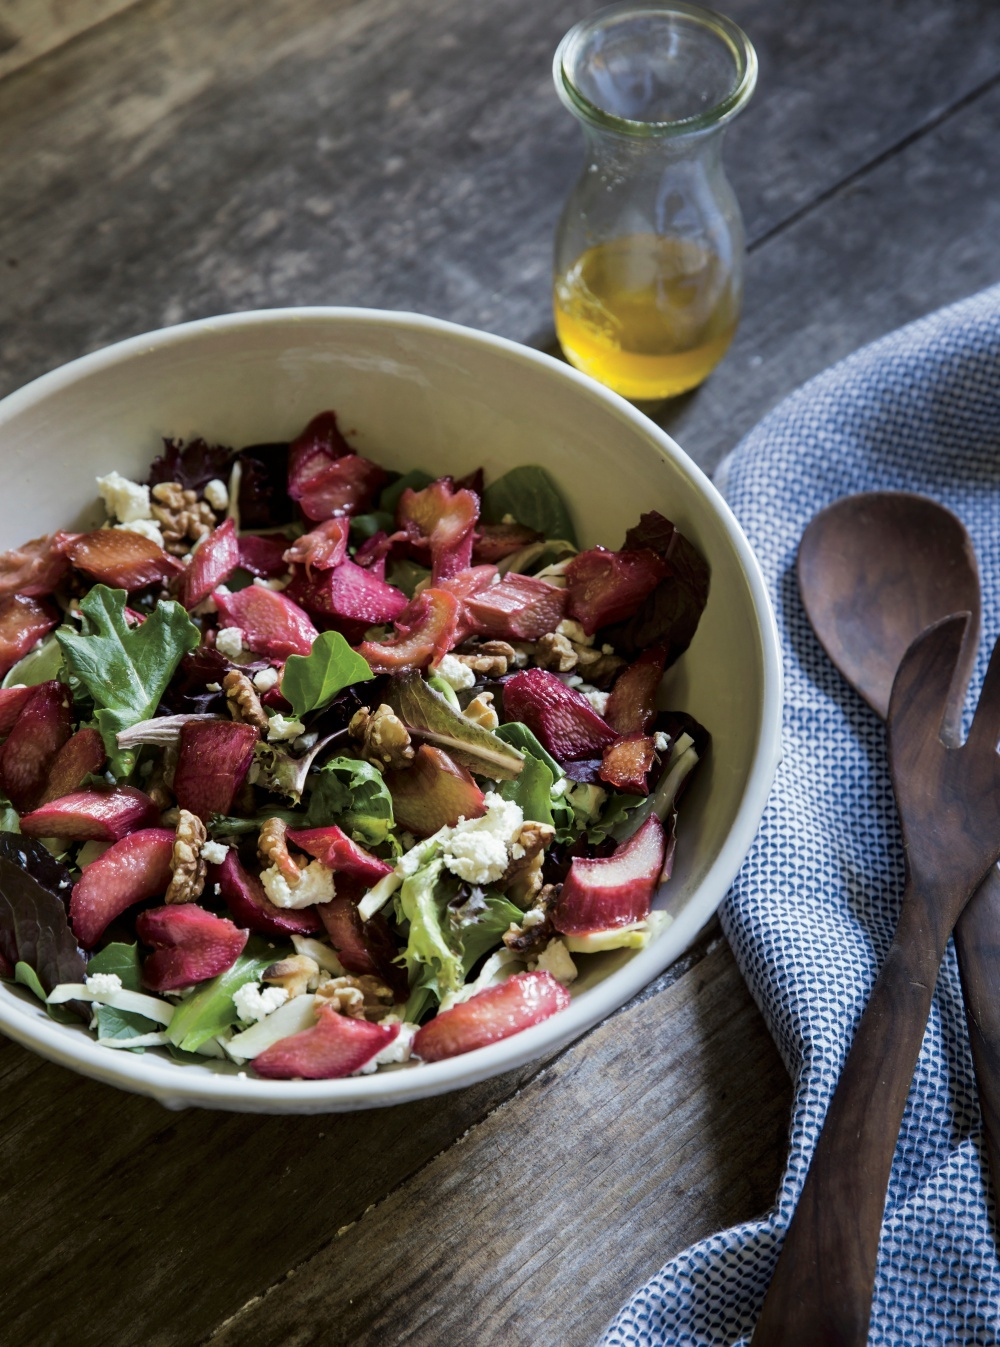 rhubarb-salad-recipe-with-fennel-goat-cheese